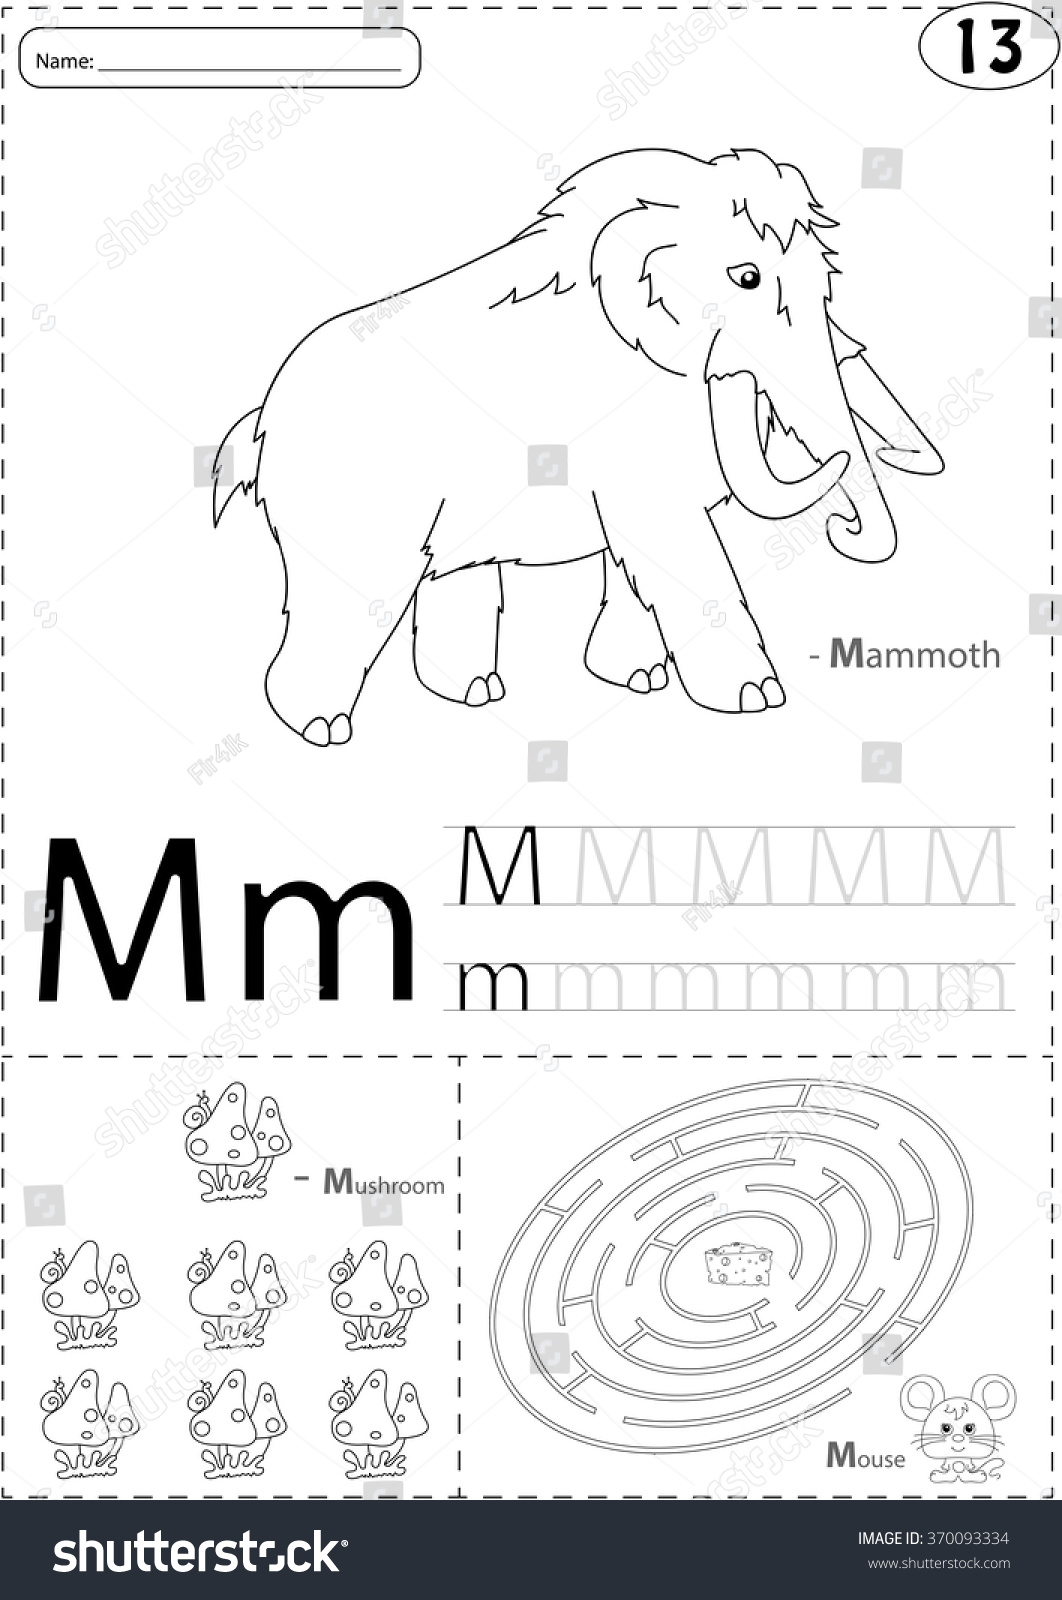 Cartoon Mammoth Mushroom And Mouse Alphabet Tracing Worksheet Writing A Z Coloring Book